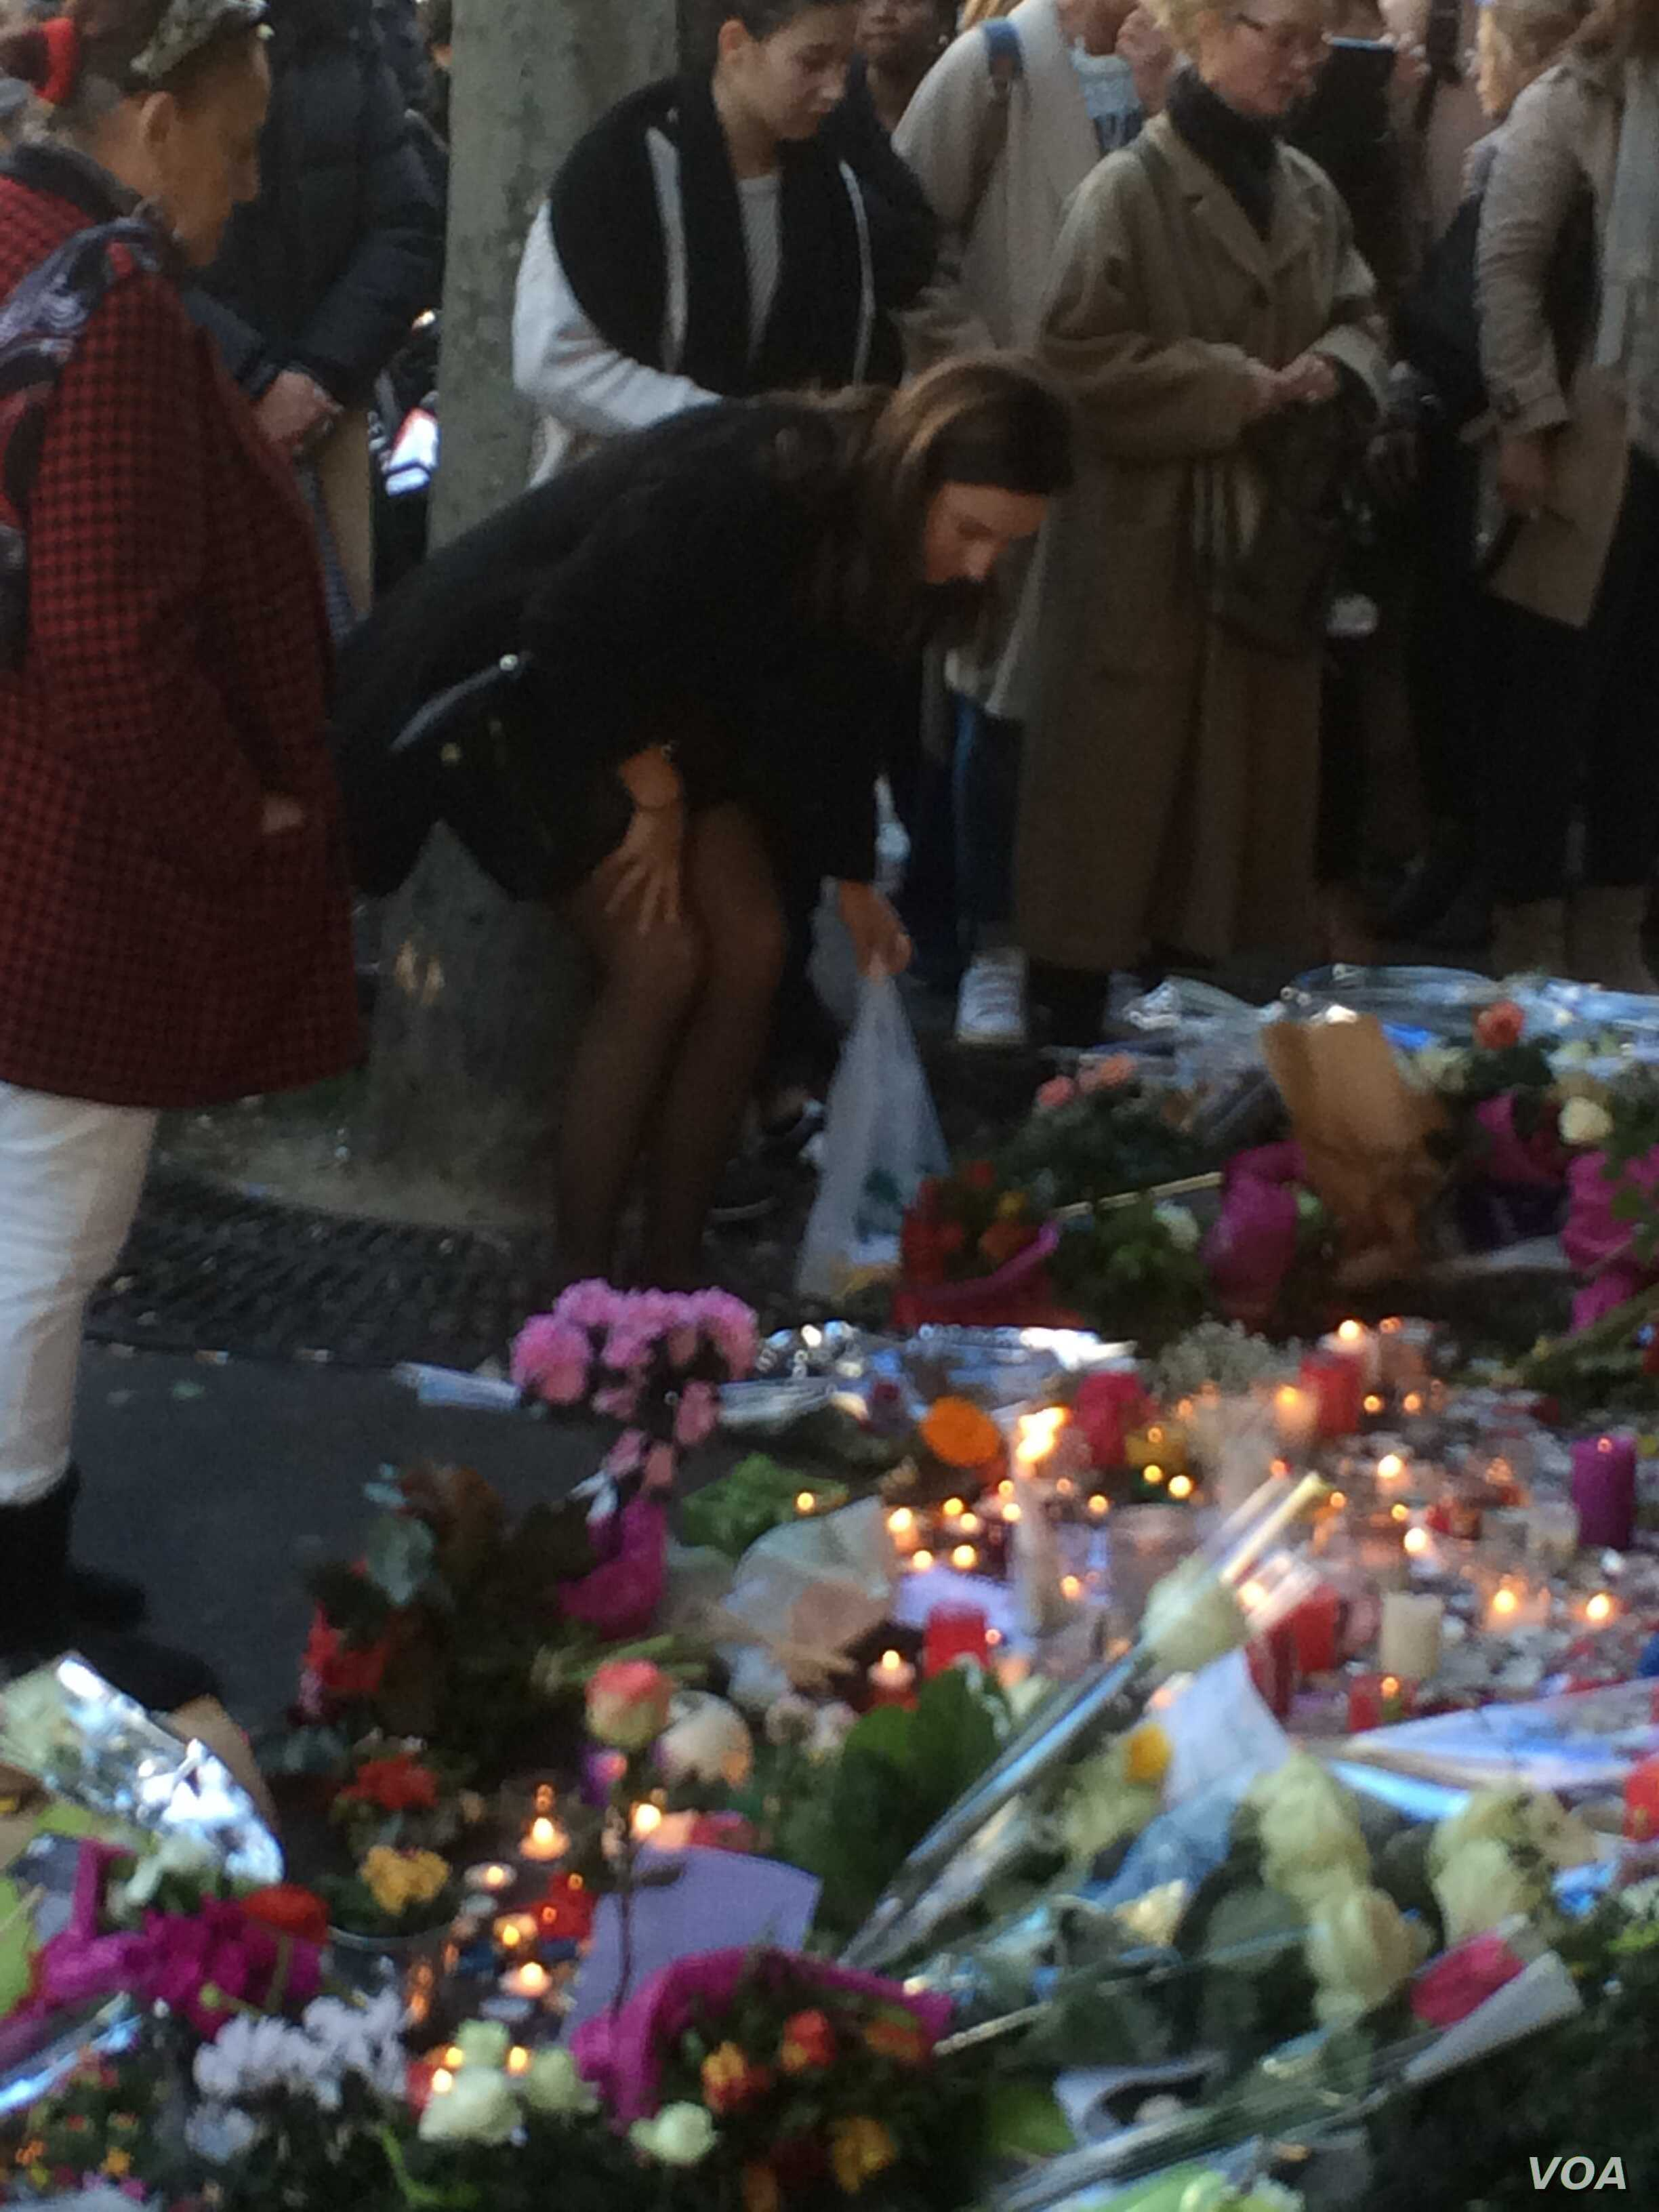 Visitors lay flowers at a memorial near La Belle Equipe bar in the rue de Charonne, where one of Friday's attacks occurred, in Paris, Nov. 15, 2015.